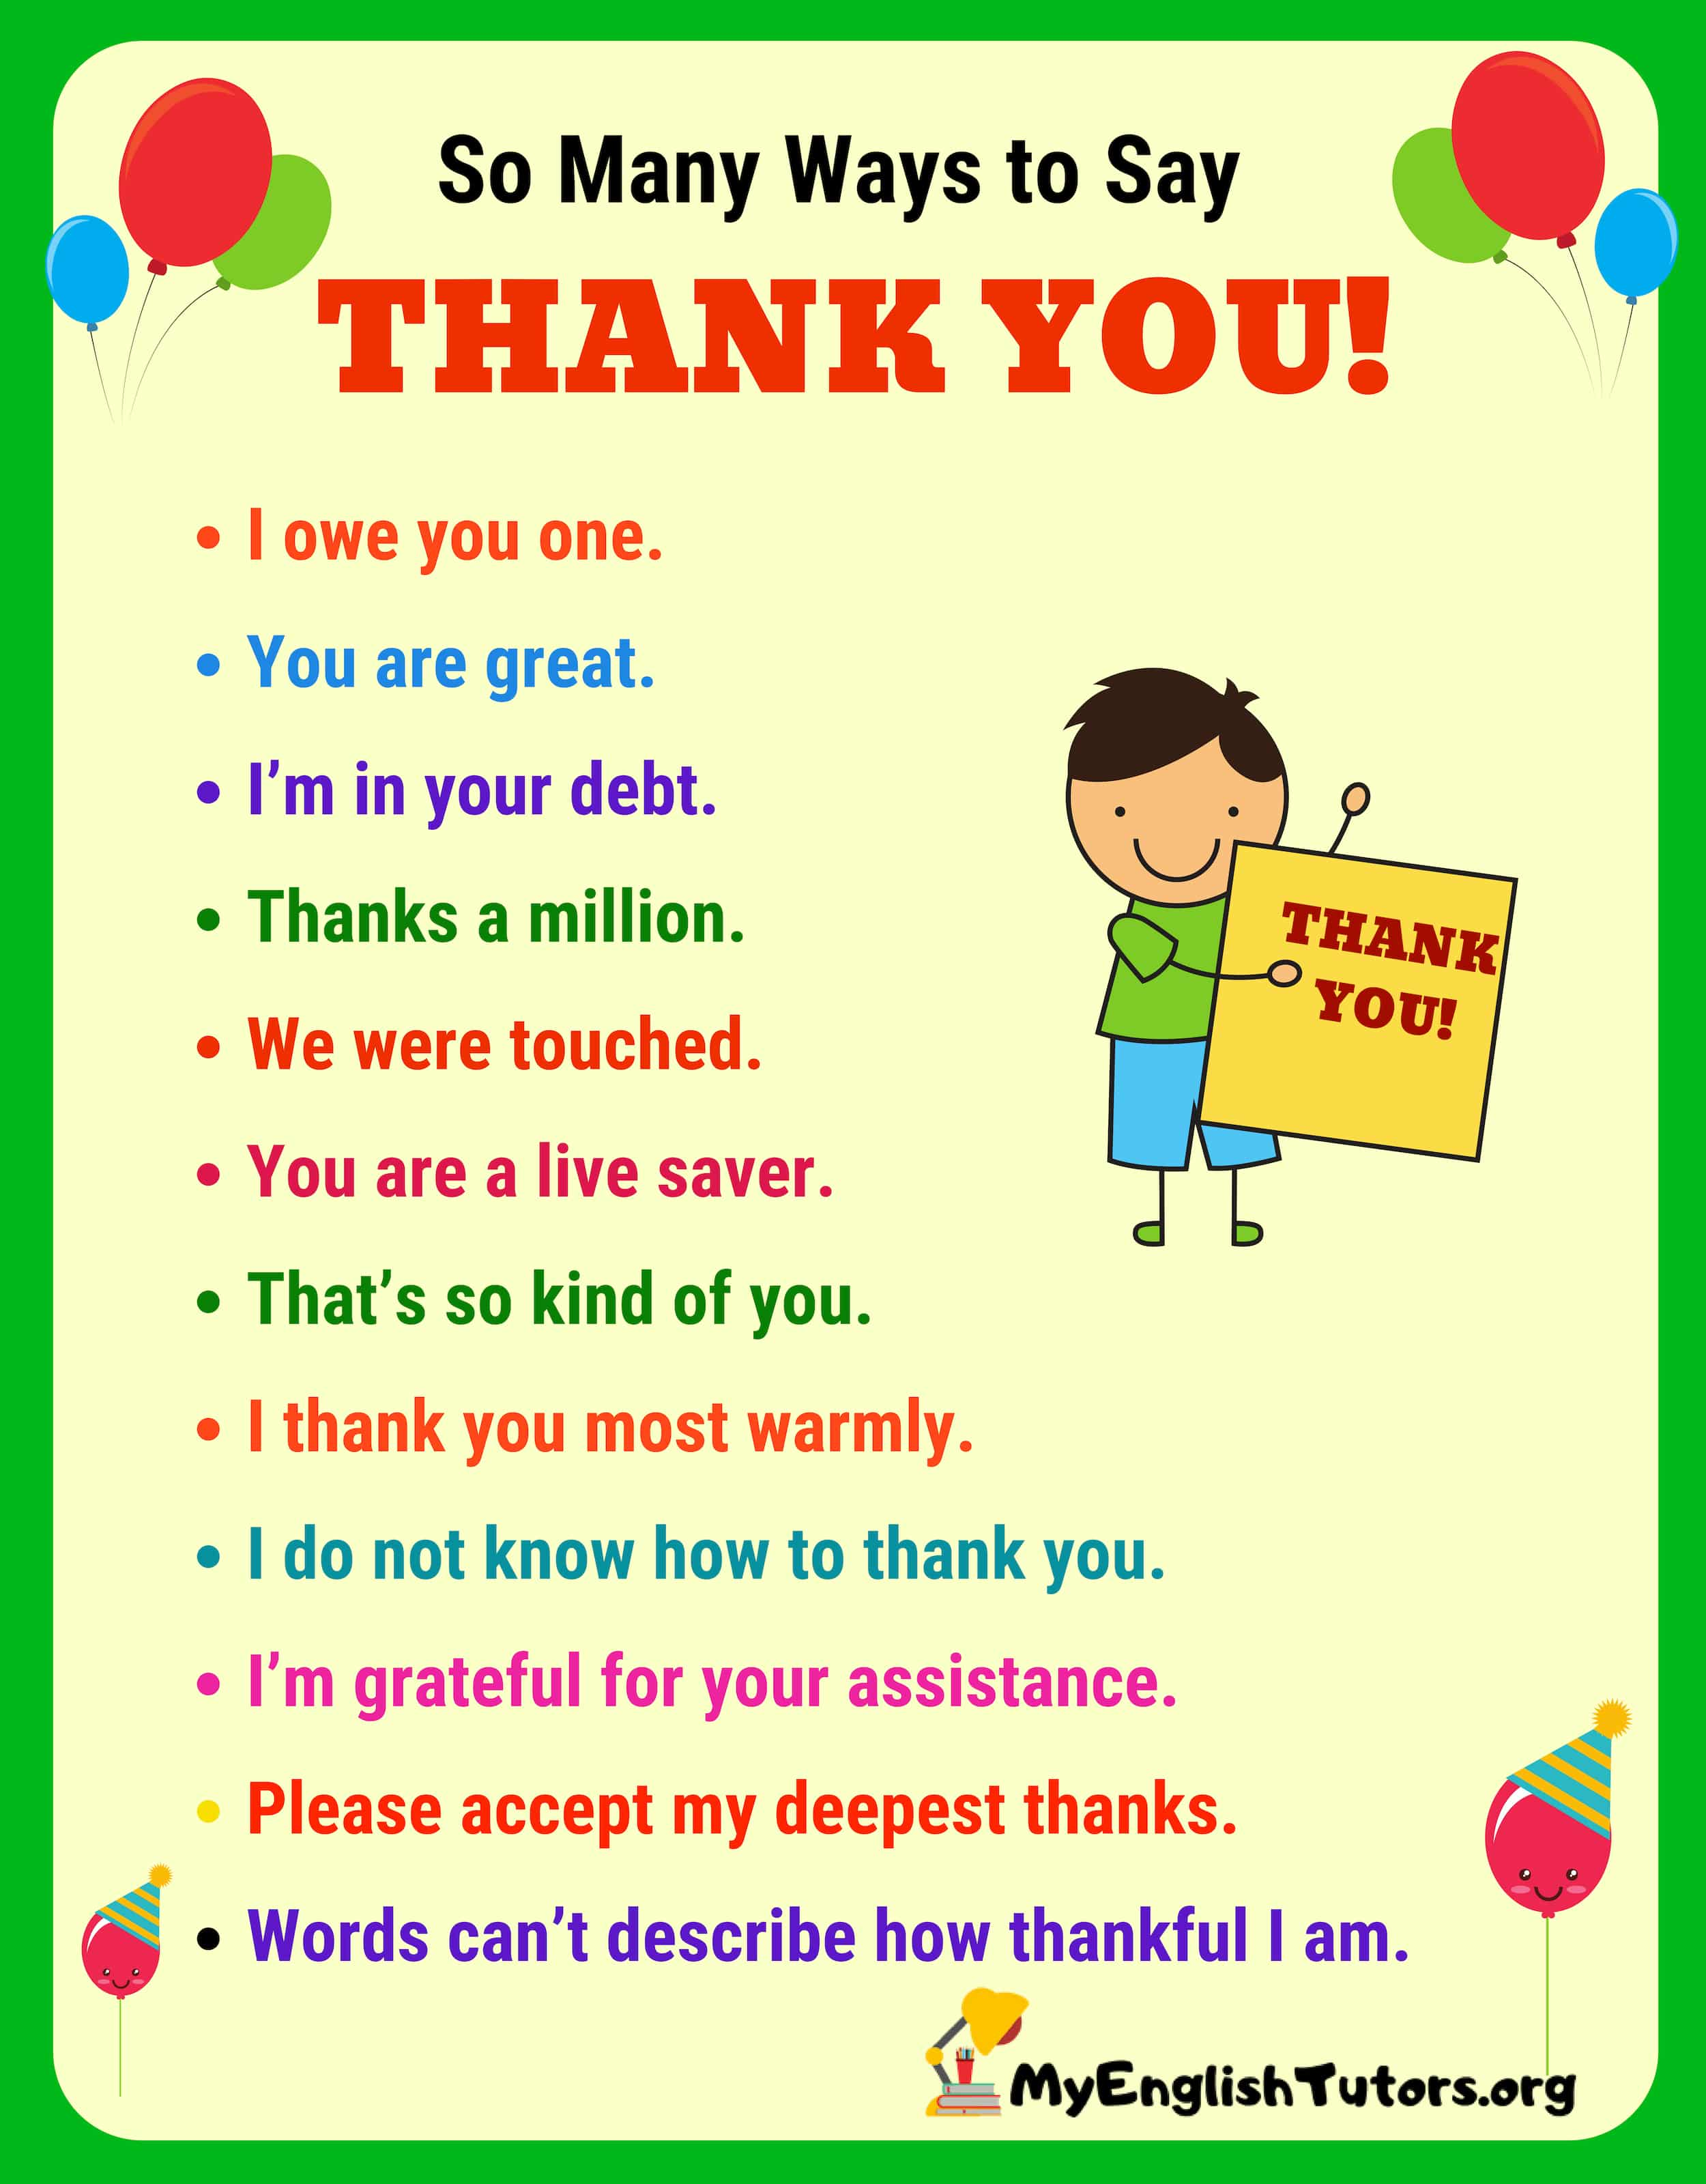 So Many Ways to Say THANK YOU